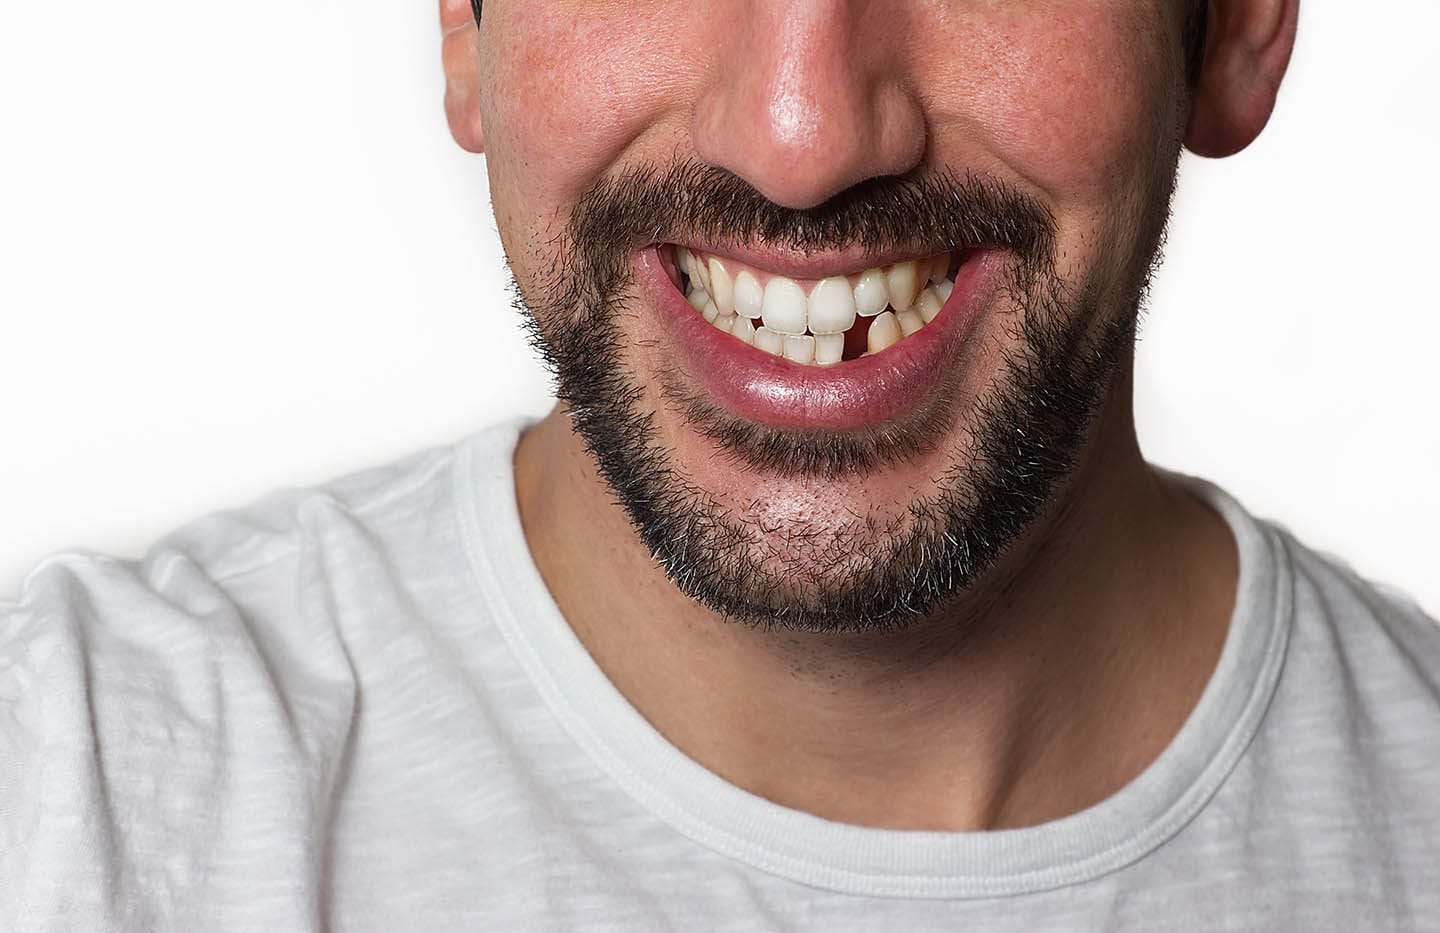 Man smiling with a tooth knocked out